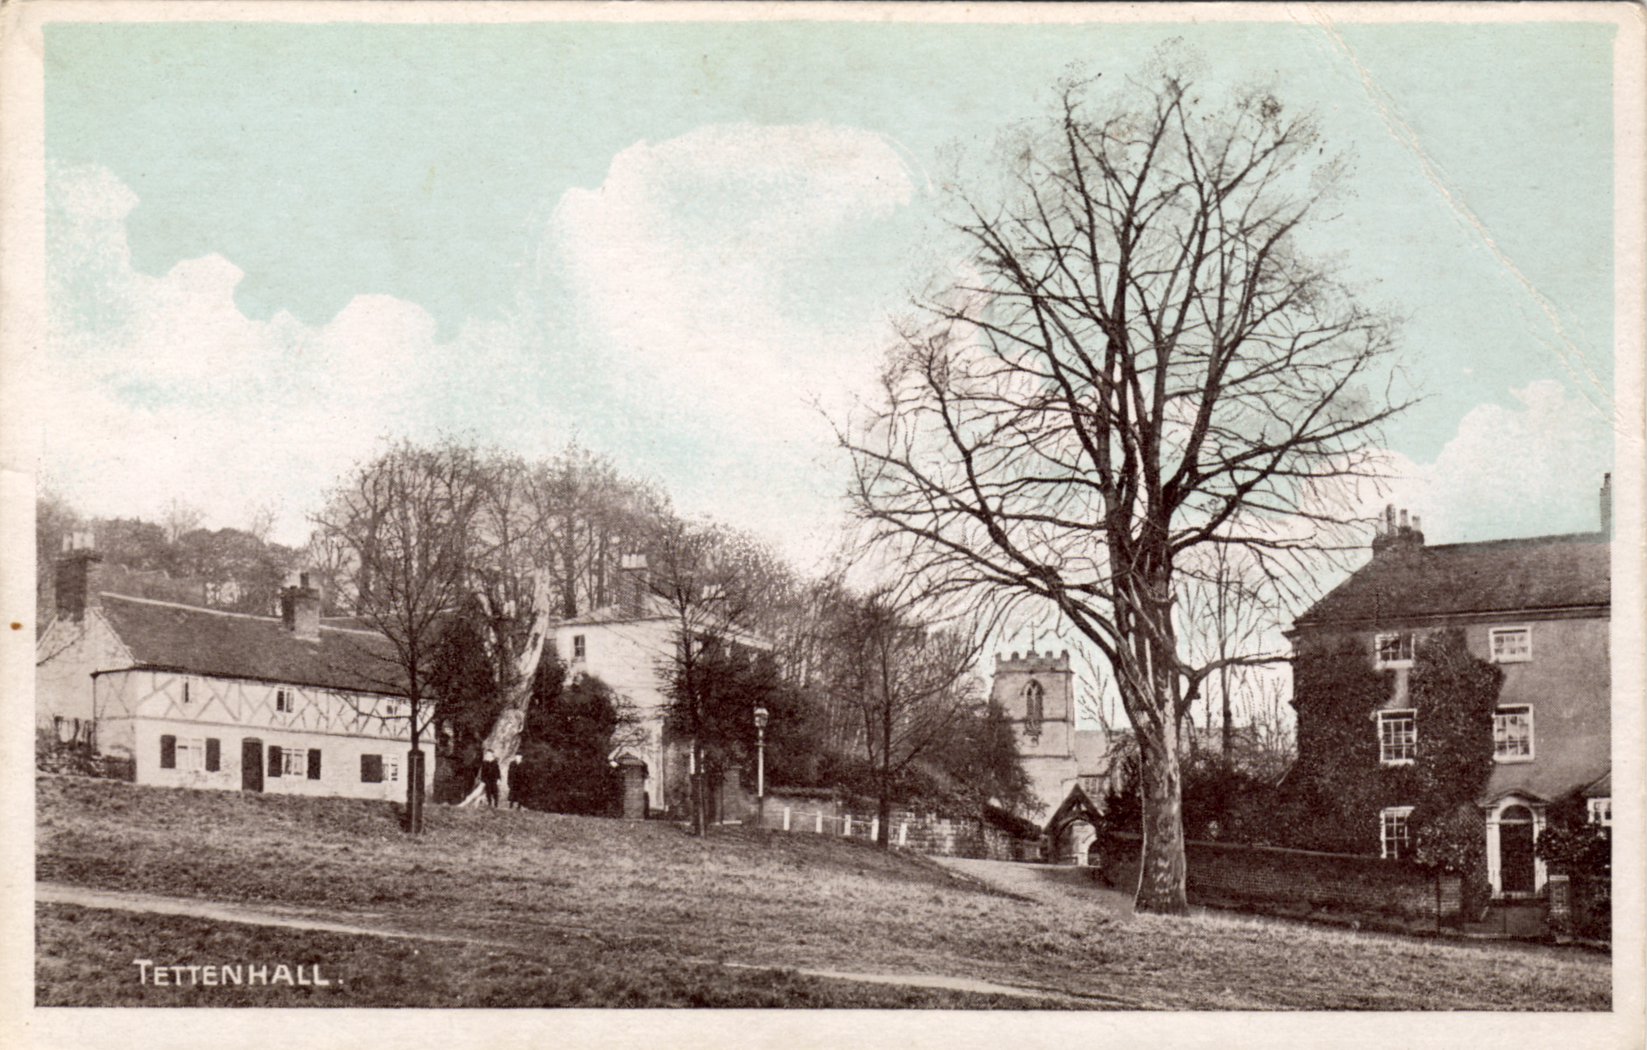 Tettenhall (Lower Green)